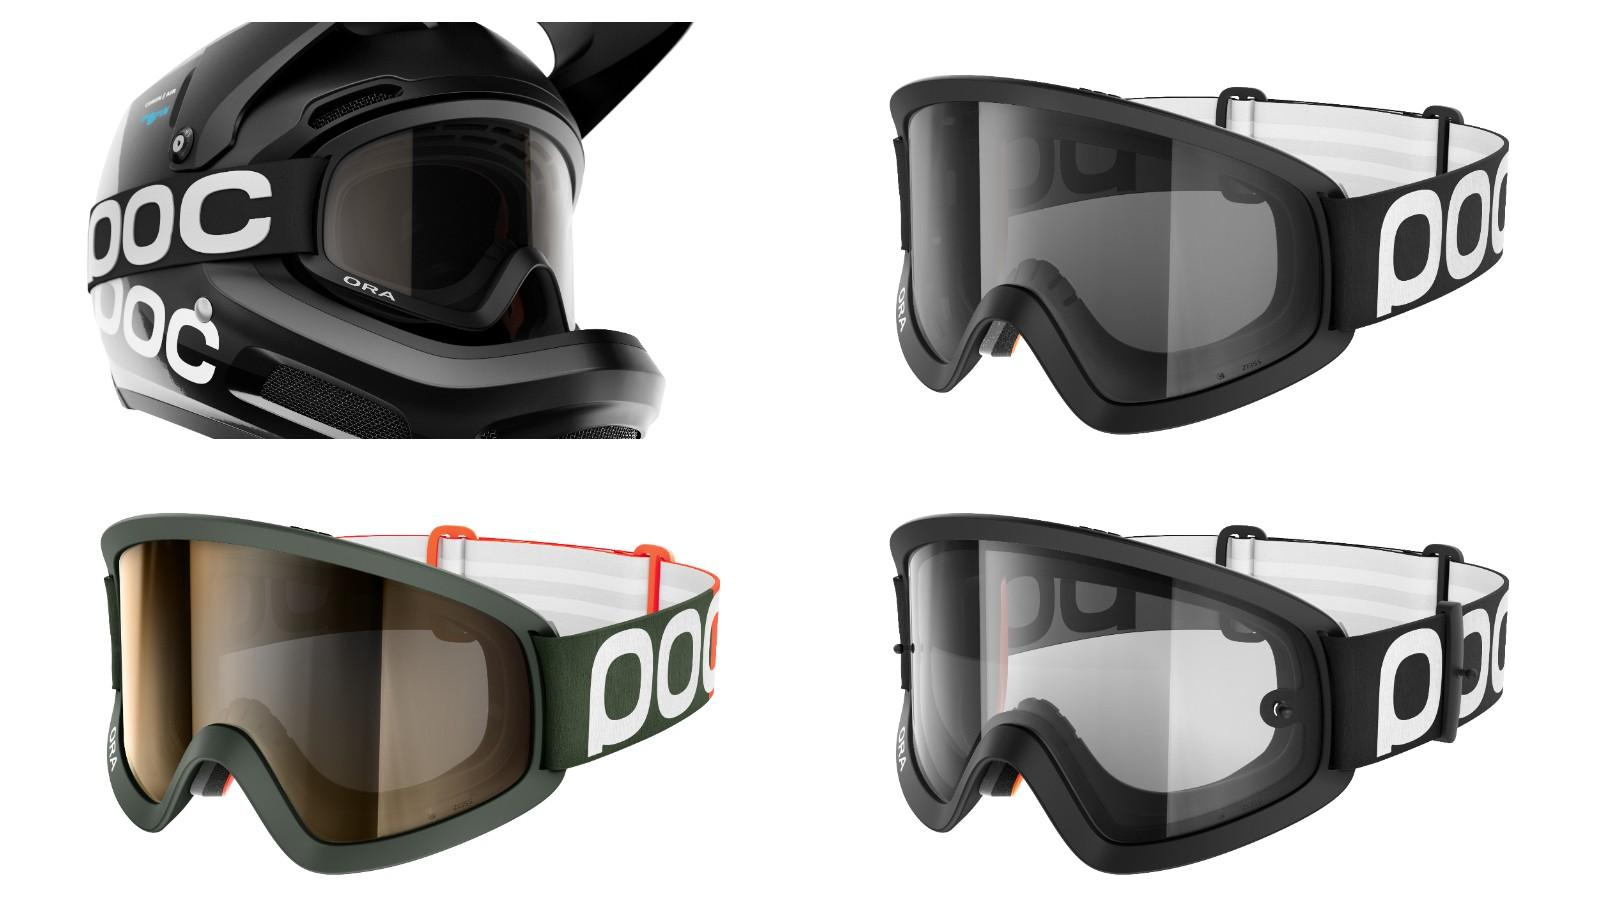 Say no to gaper's gap. POC's Ora goggles are claimed to fit perfectly with the Coron Air full face helmet